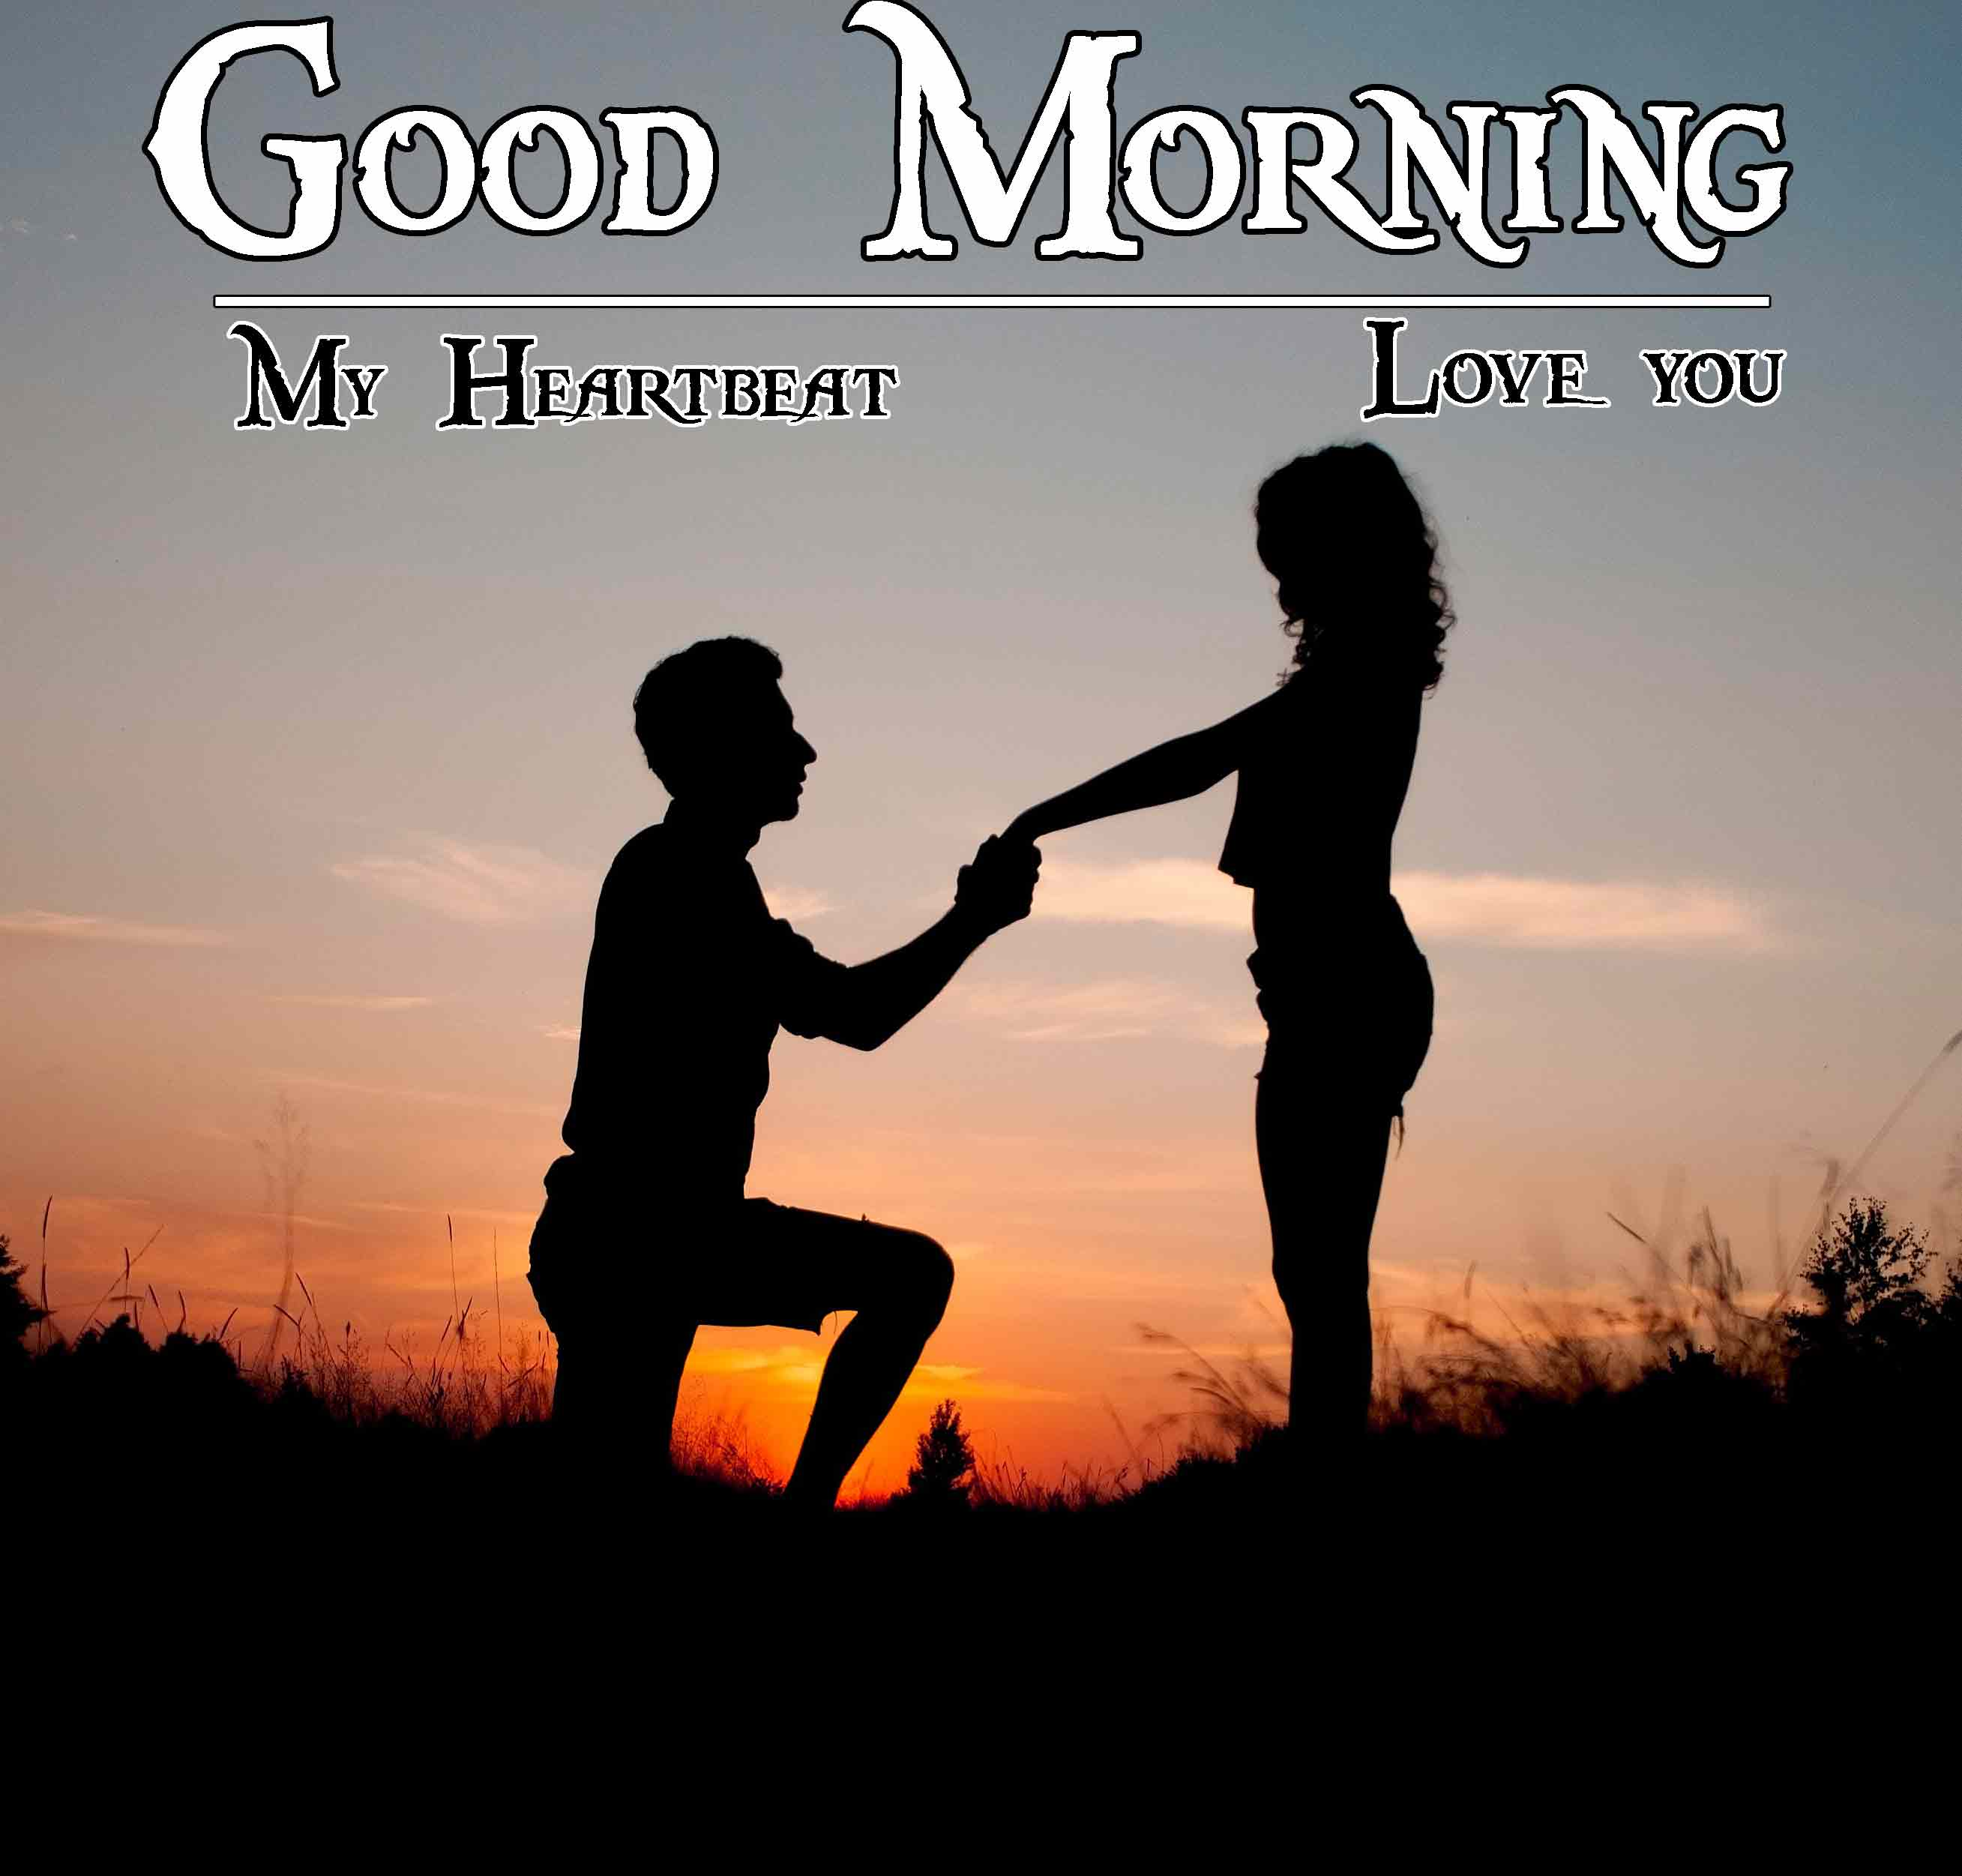 Love Couple good morning 24